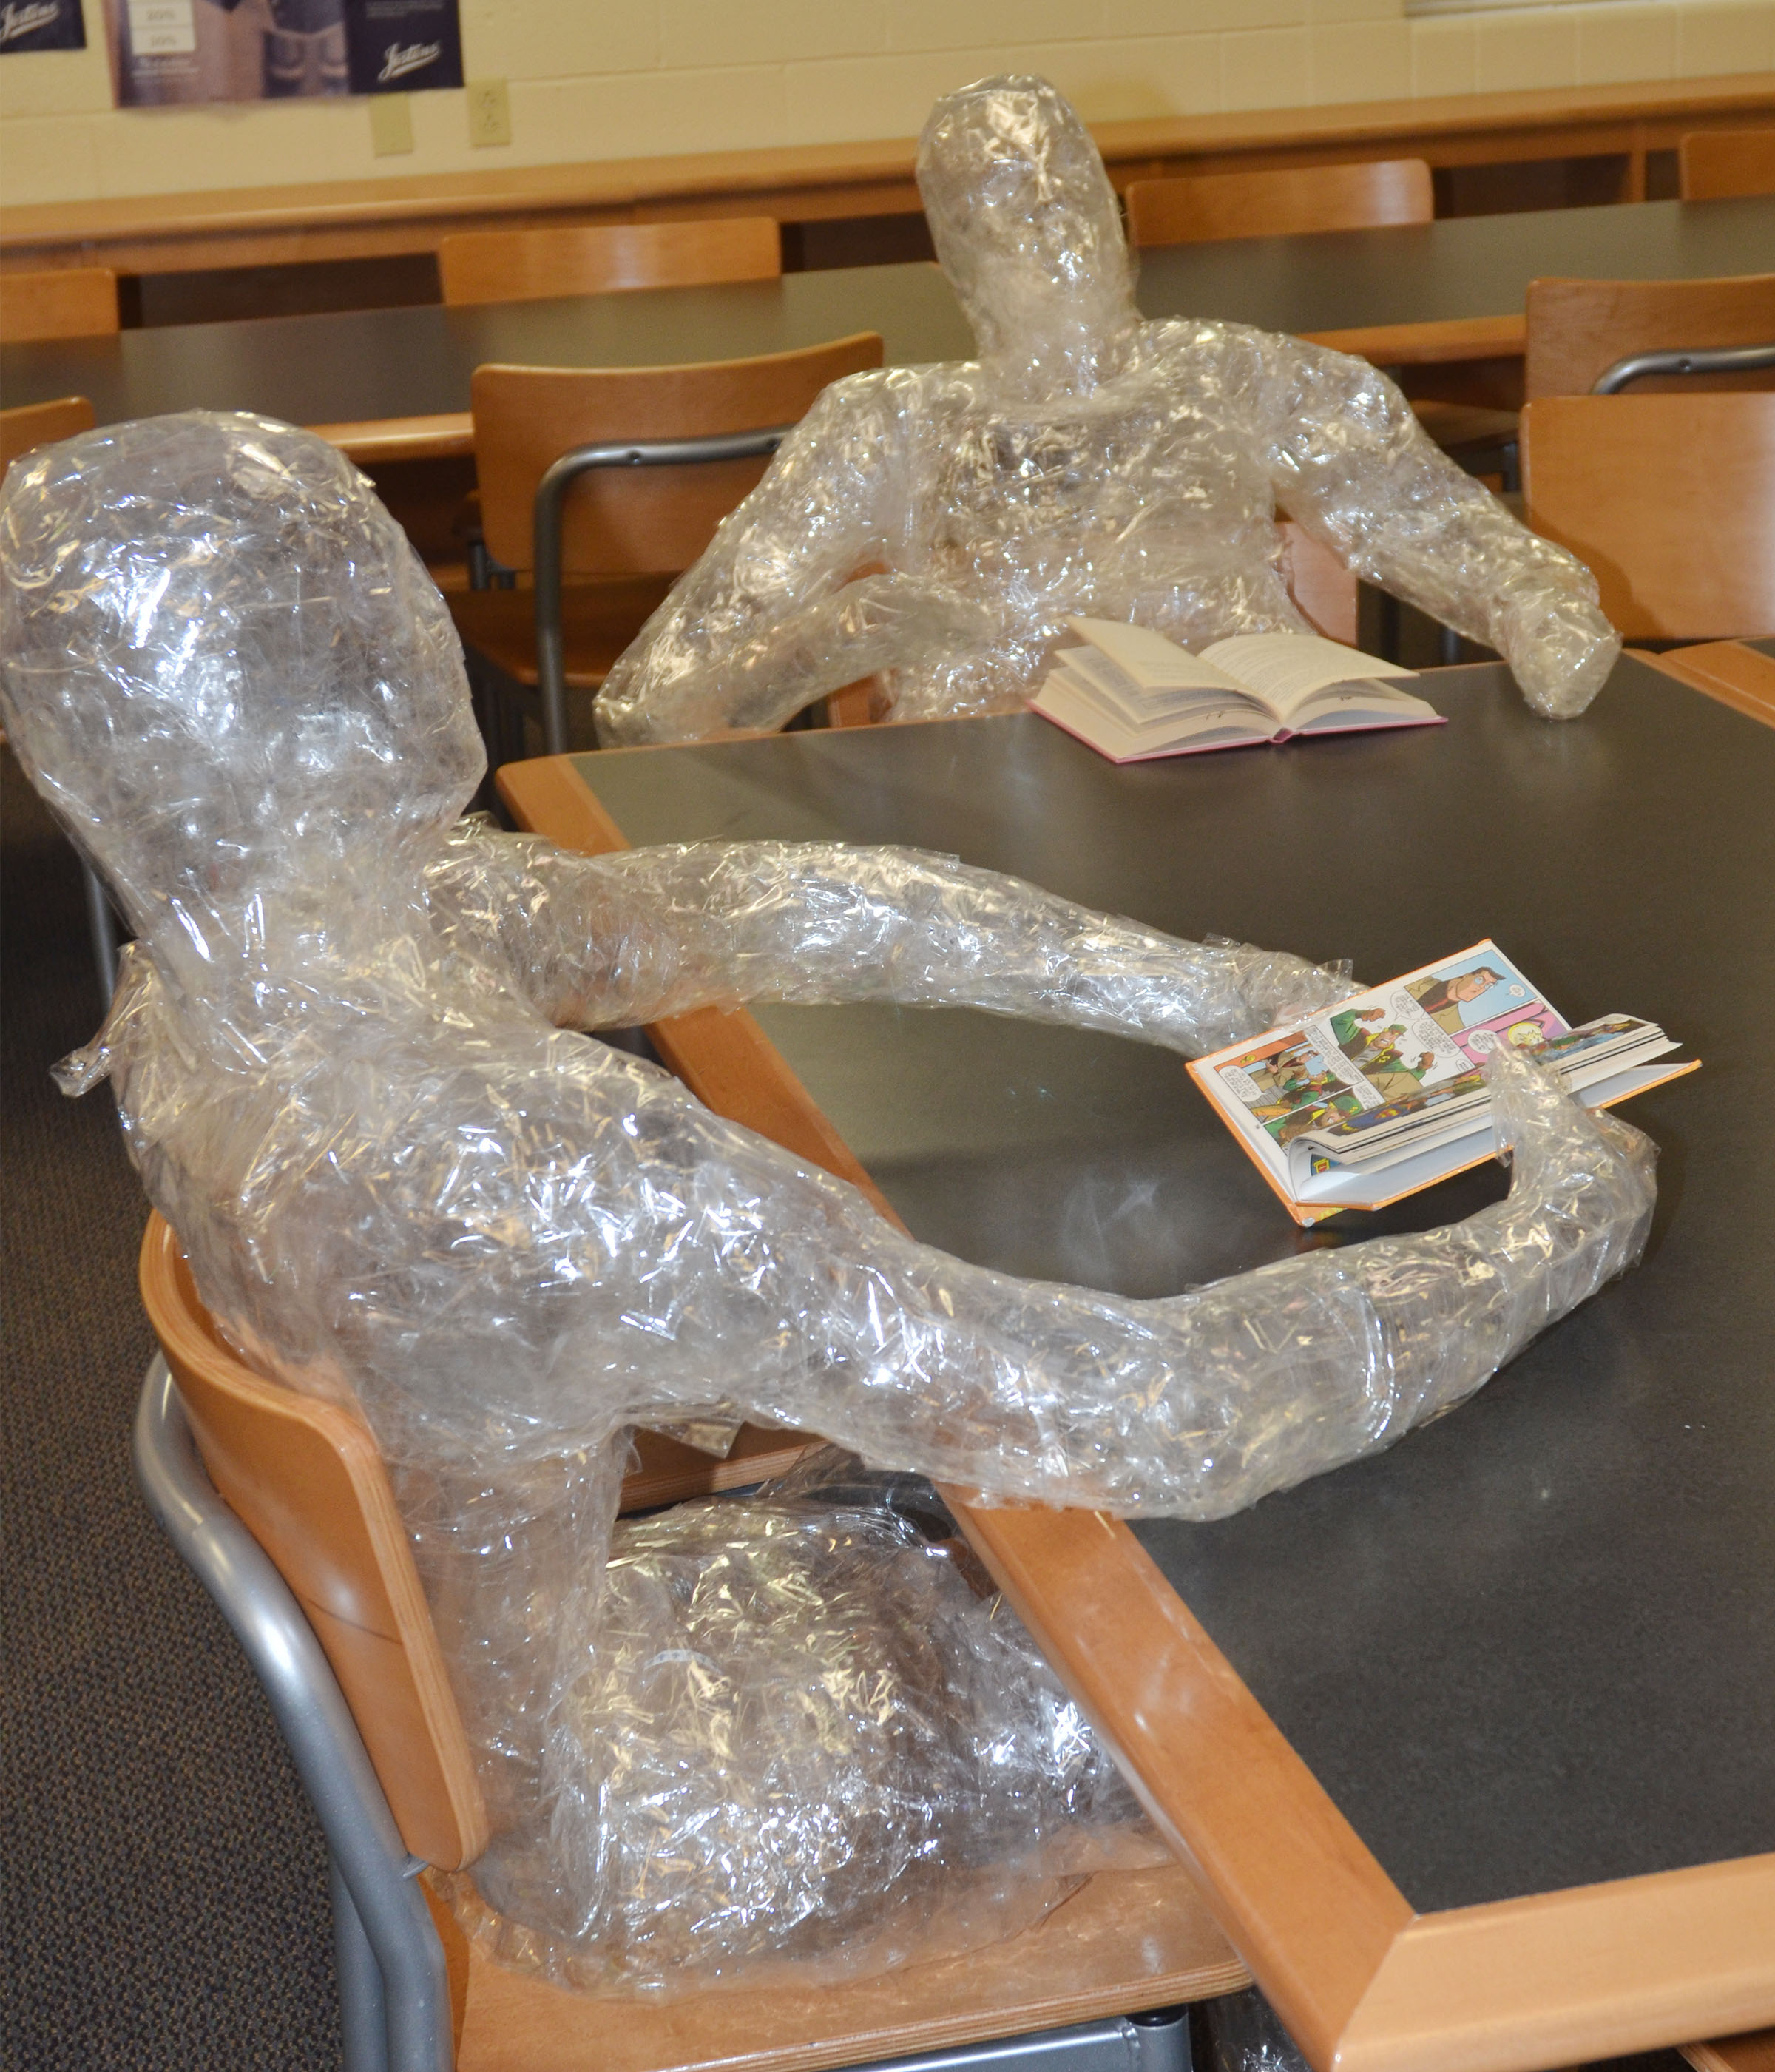 Tape sculptures like this one have been seen around Campbellsville middle and high schools.